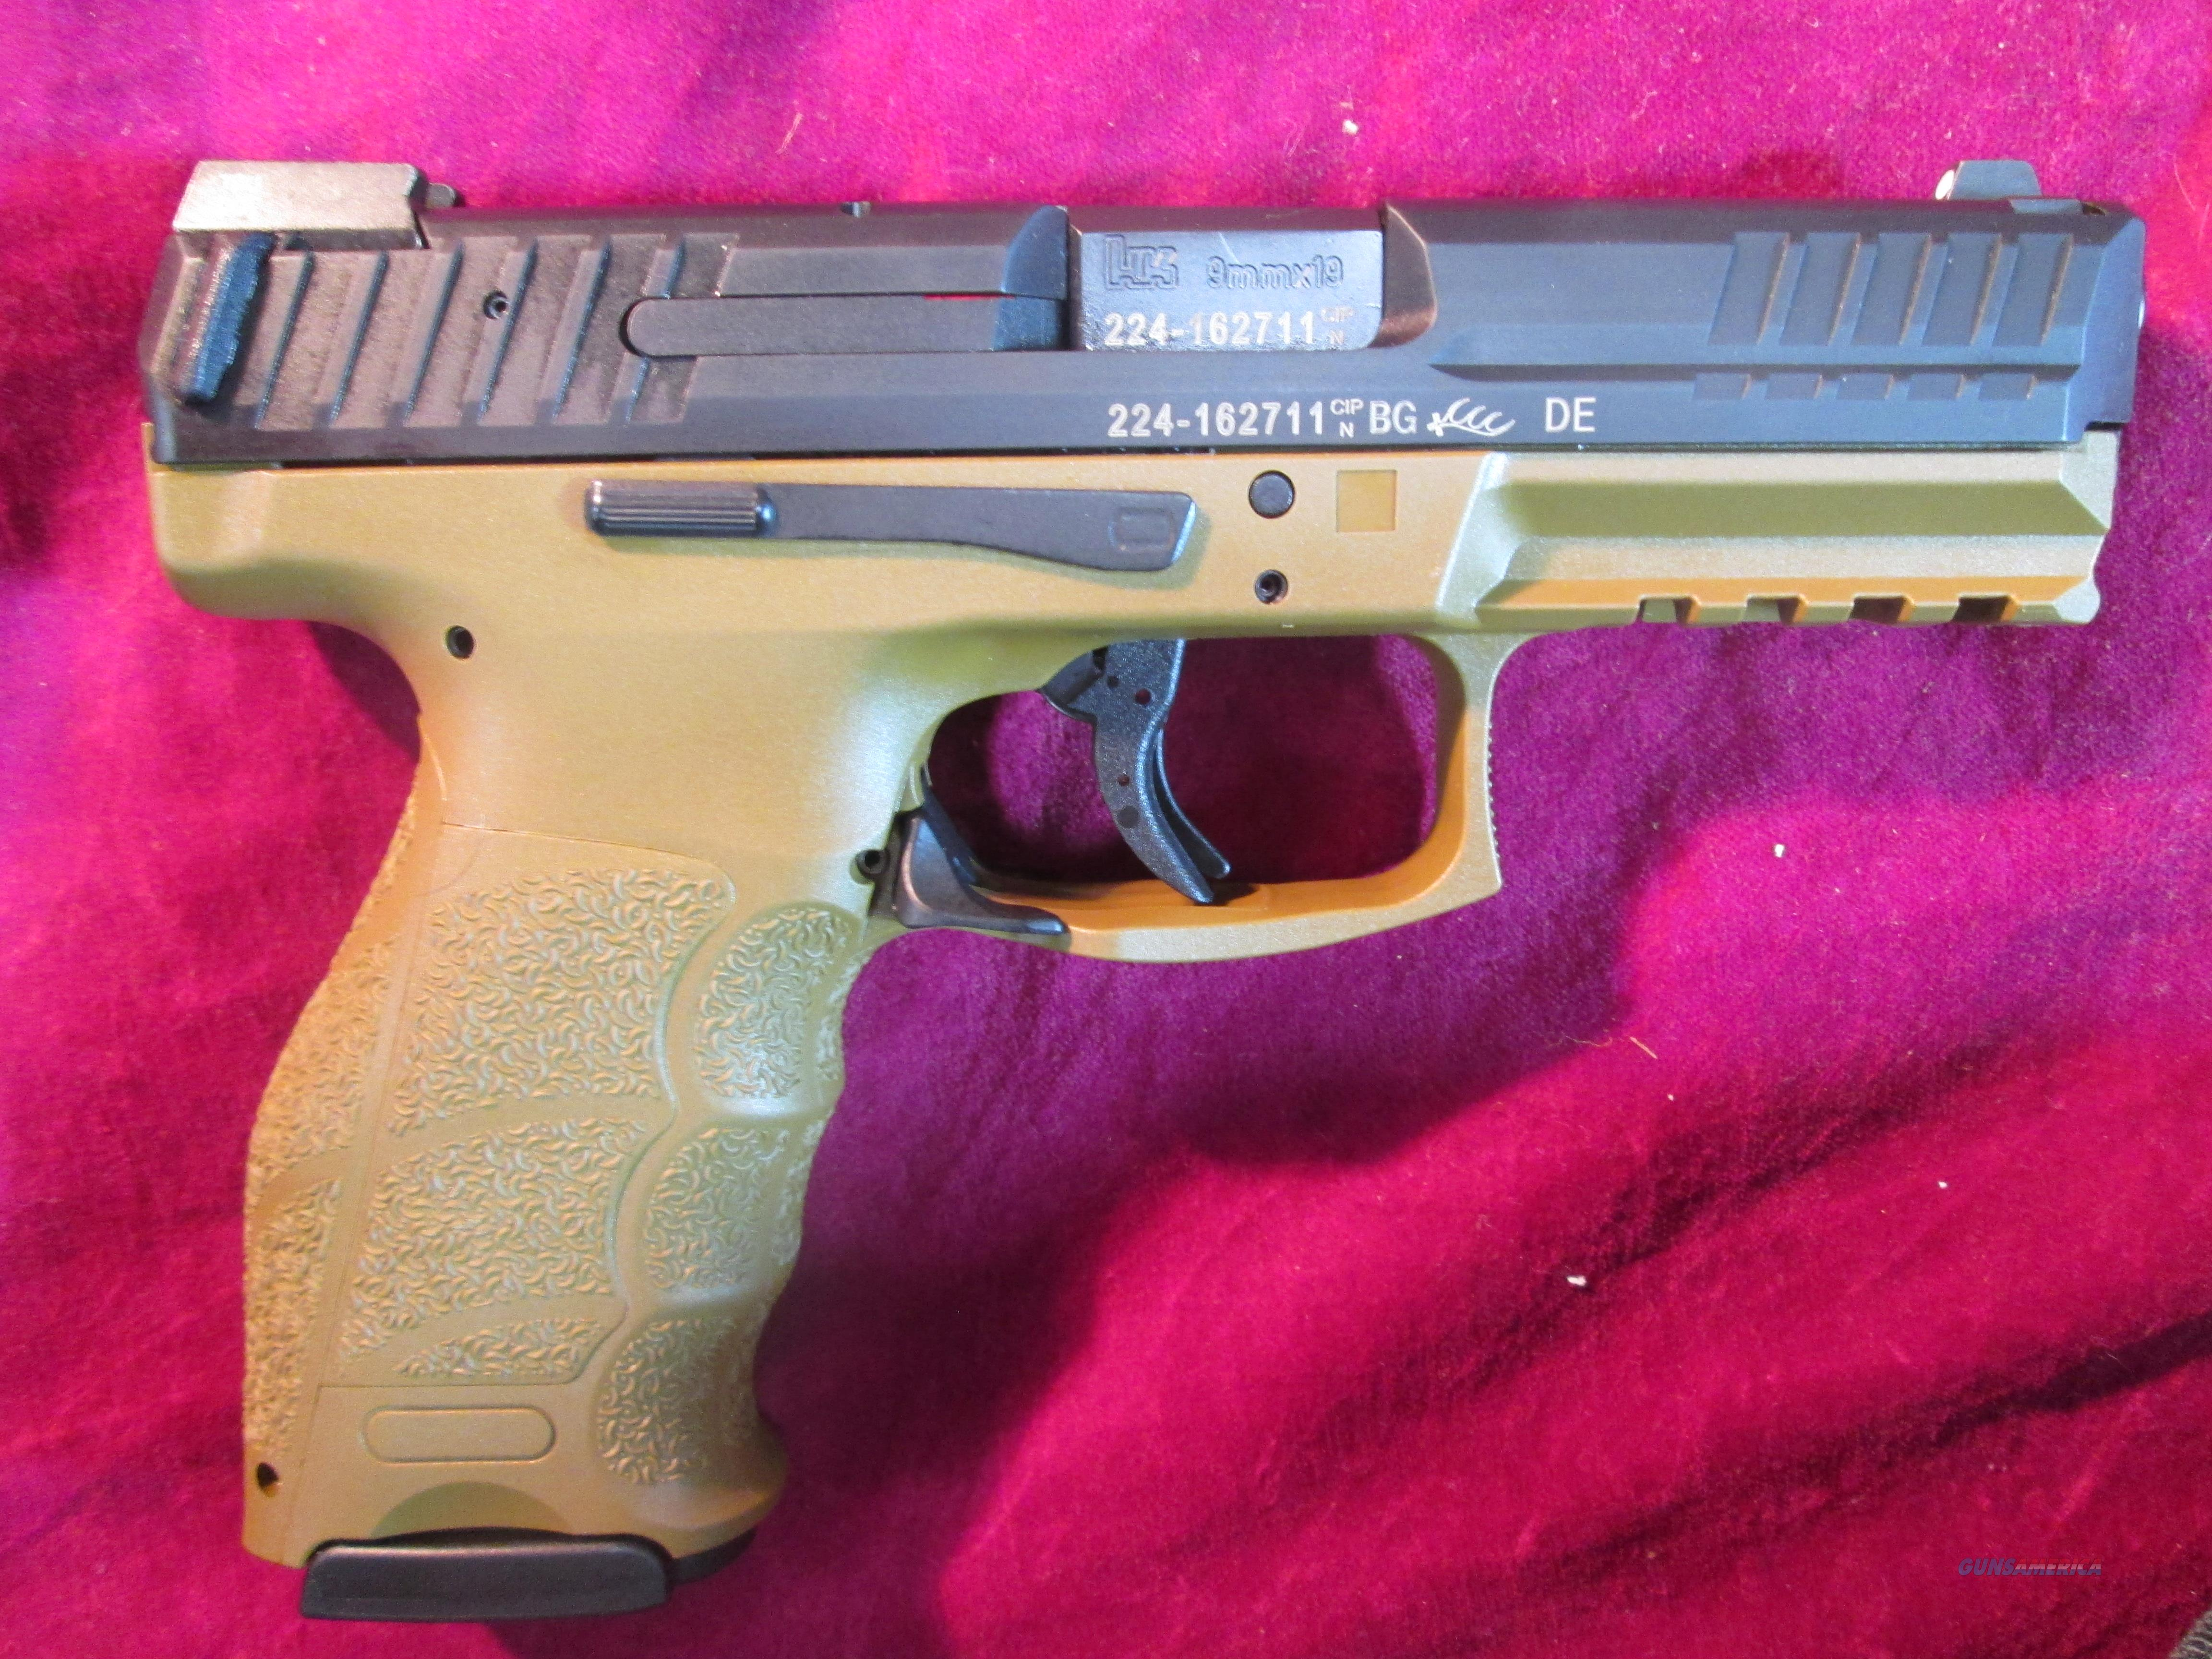 HK VP9 FLAT DARK EARTH 9MM LE STRIKER FIRED W/ NIGHT SIGHTS AND 3 HIGH CAP MAGS NEW (700009FDELE-A5)    Guns > Pistols > Heckler & Koch Pistols > Polymer Frame